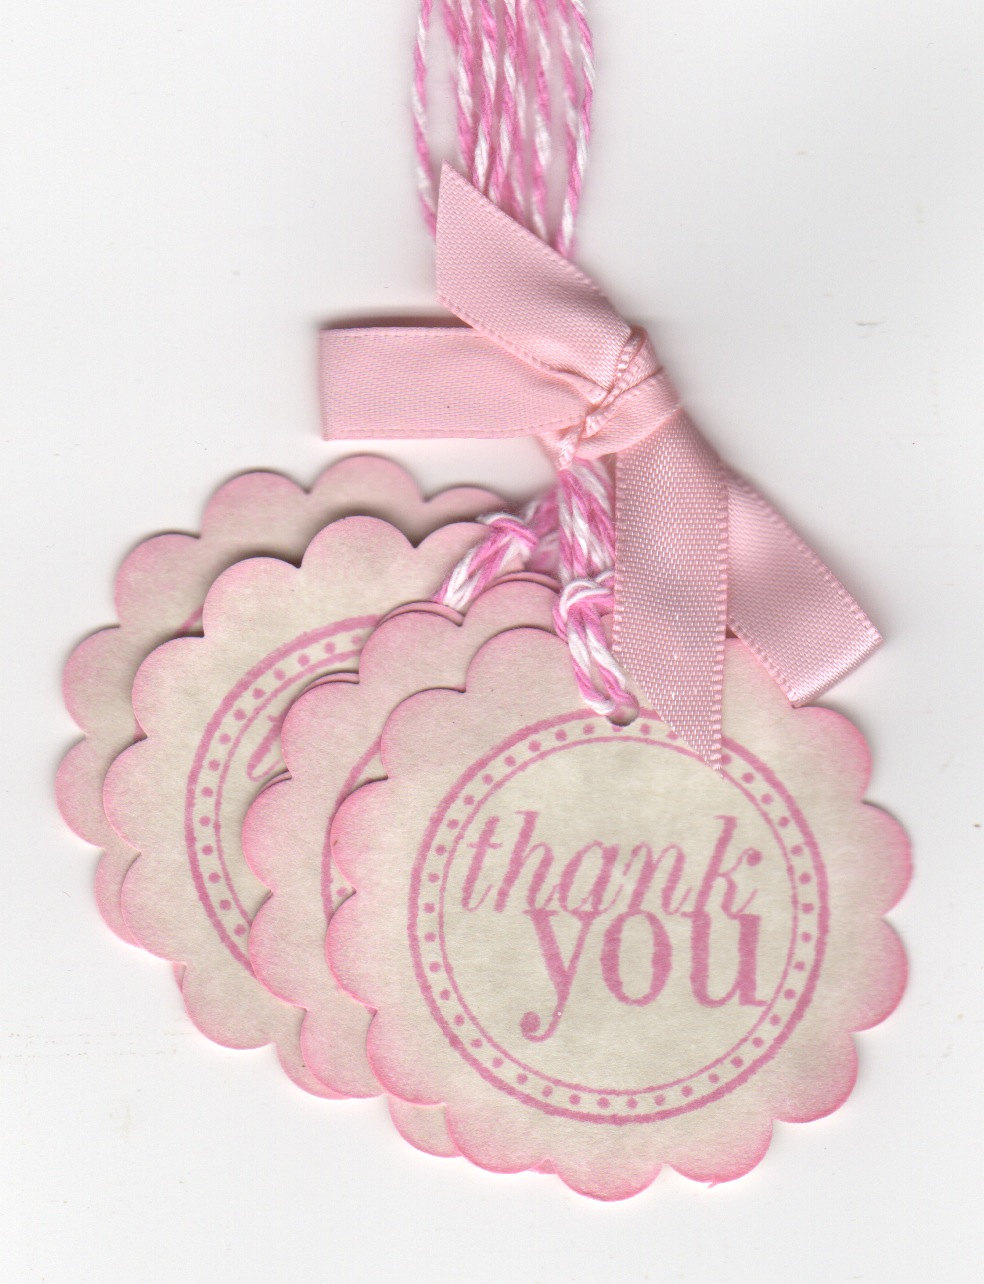 New Baby Boy Gift Tag : Pink baby shower thank you tags gift nail